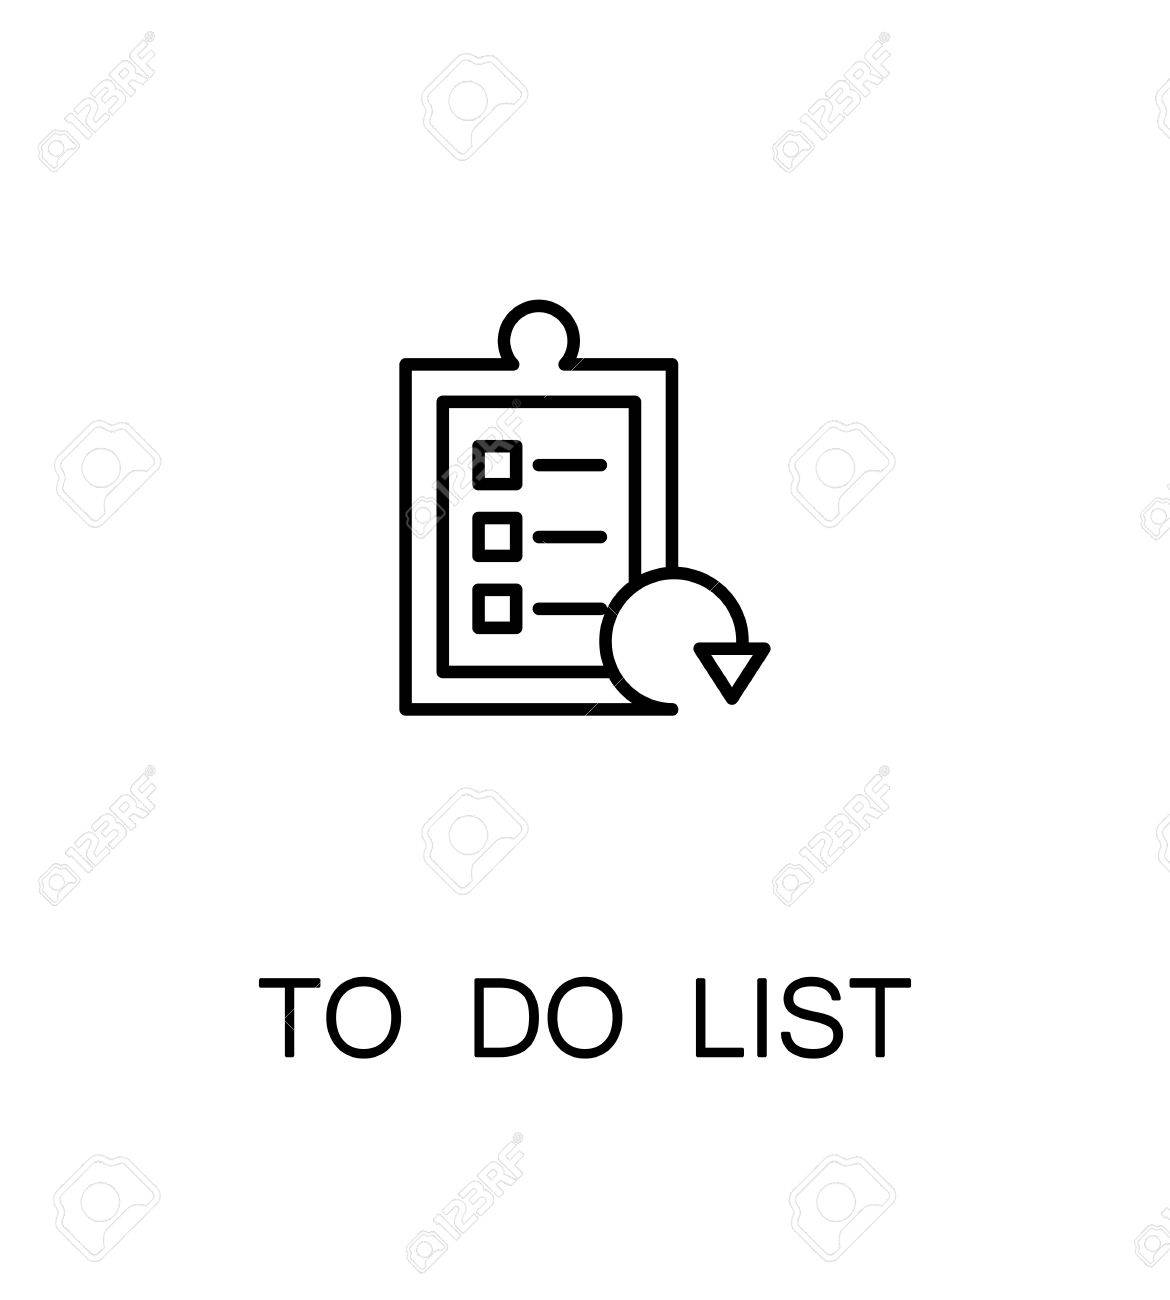 to do list clipart black and white